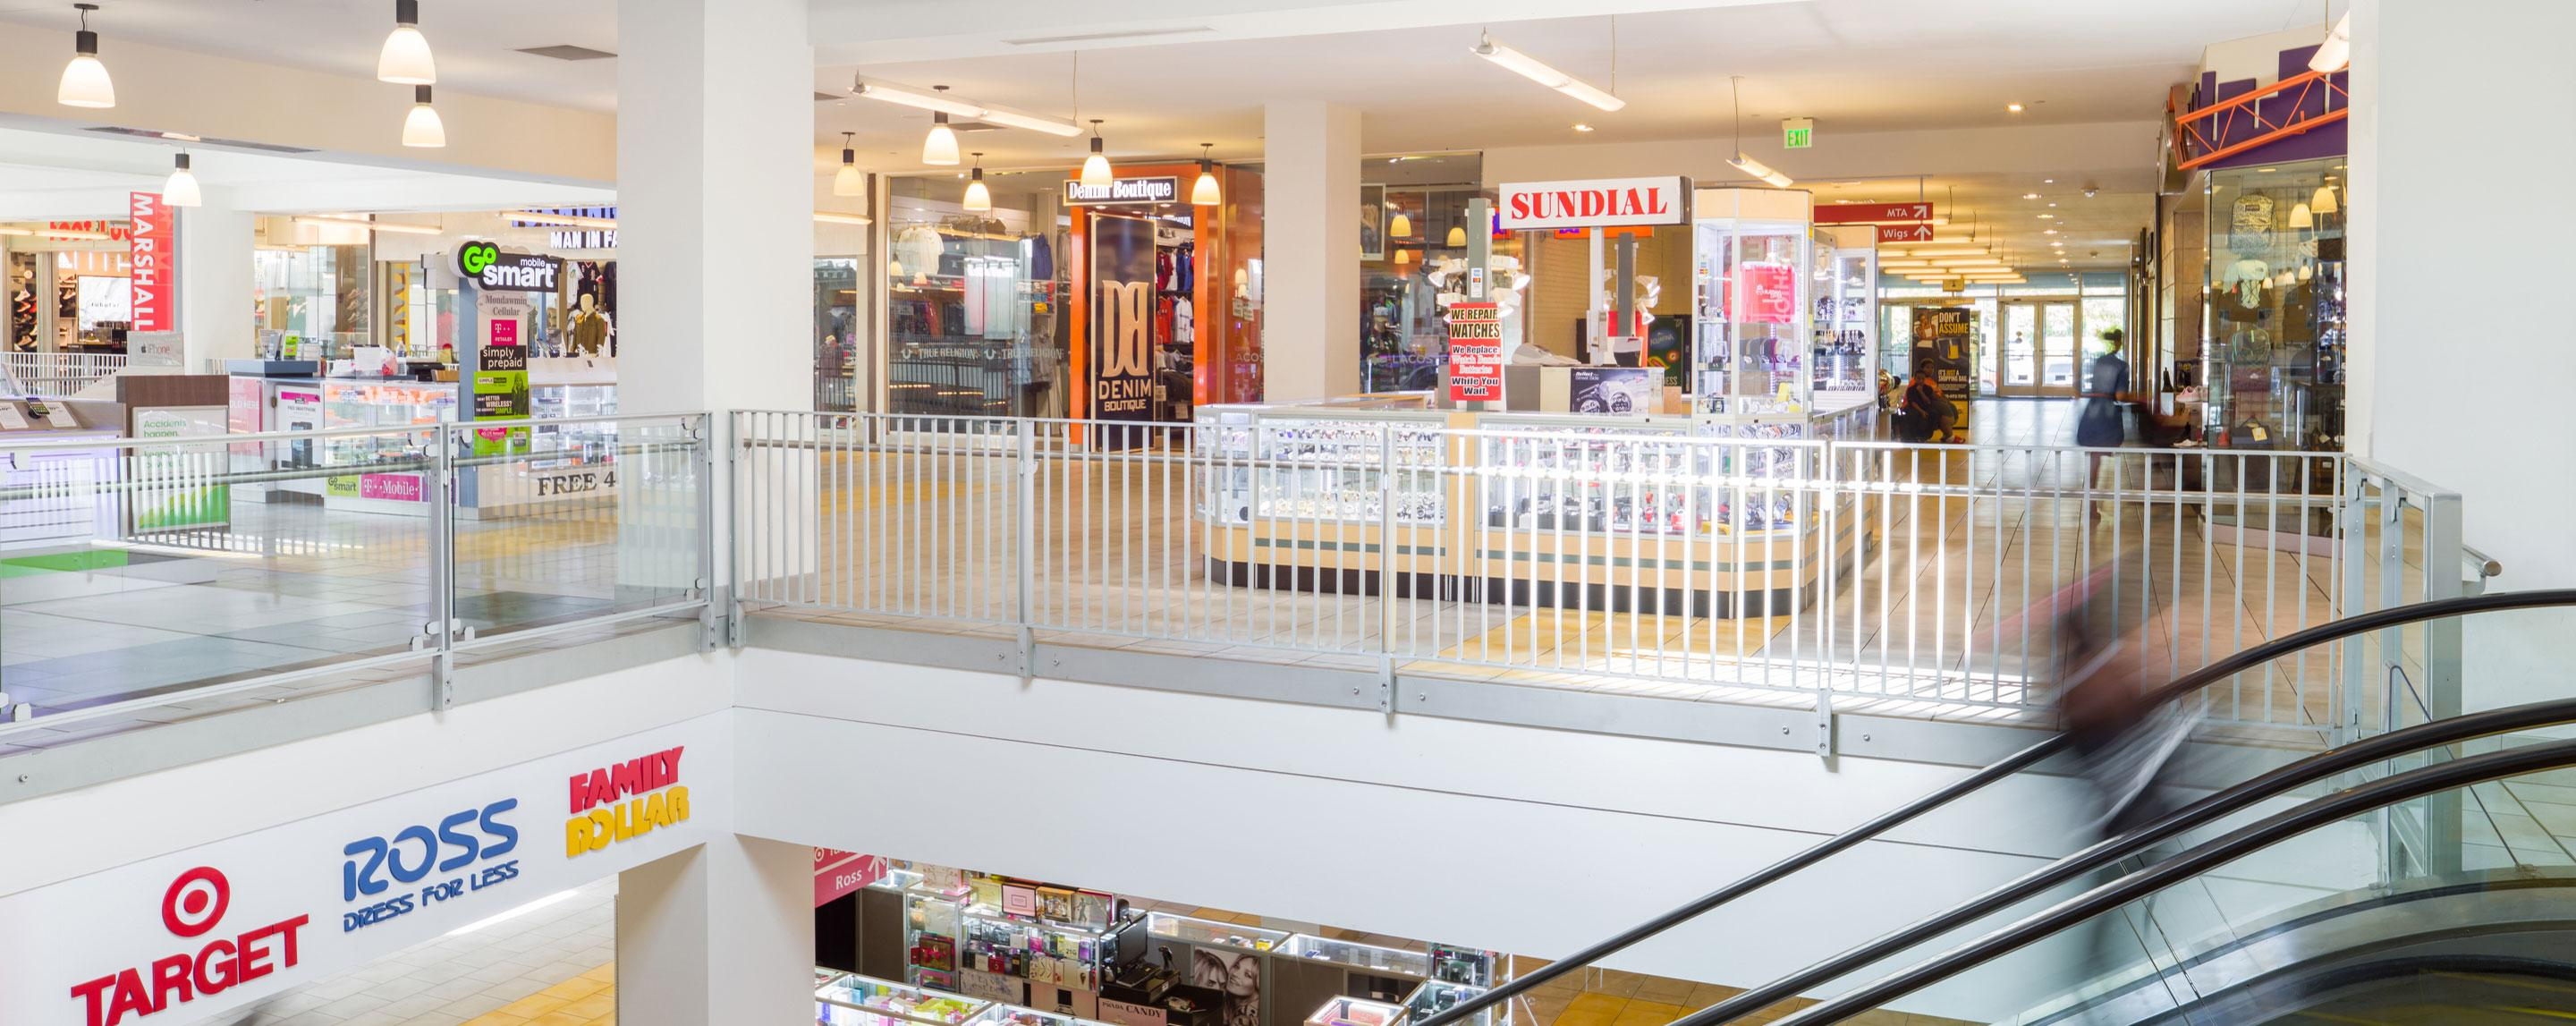 The shot from the top of an escalator in a two story mall. A Sundial stand is directly in front of the camera.